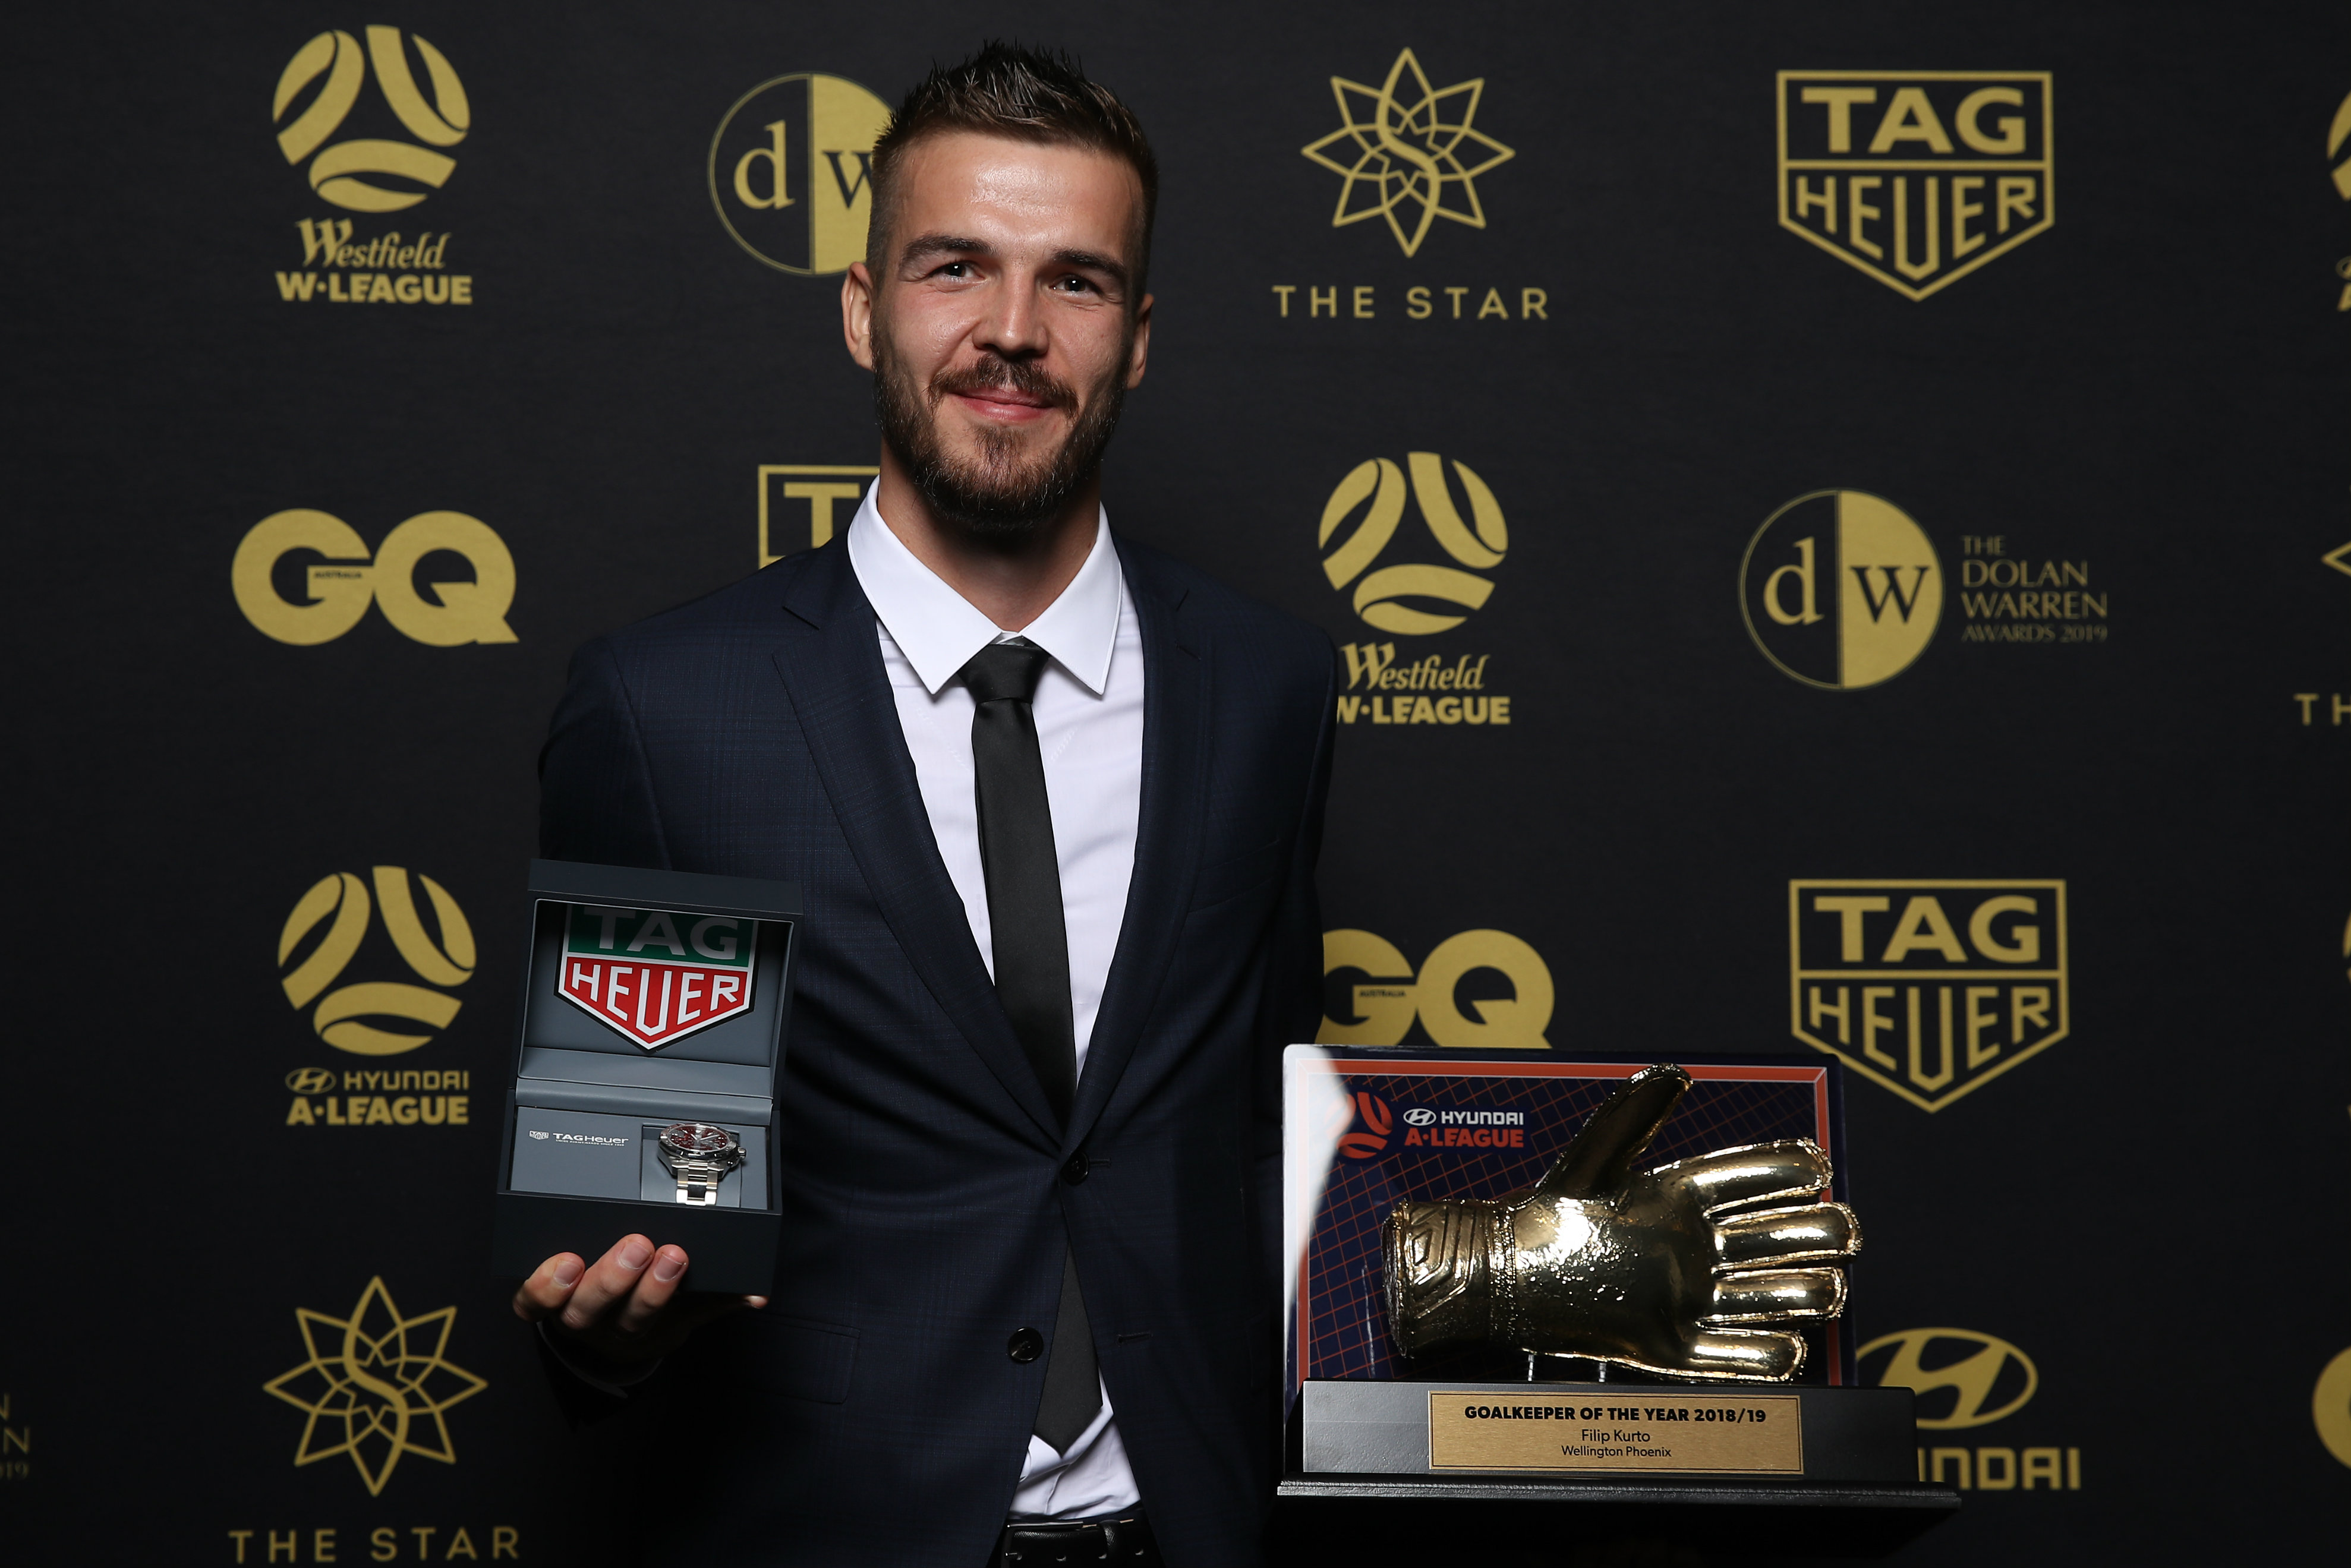 Wellington Phoenix's Filip Kurto took out the Goalkeeper of the Year Award